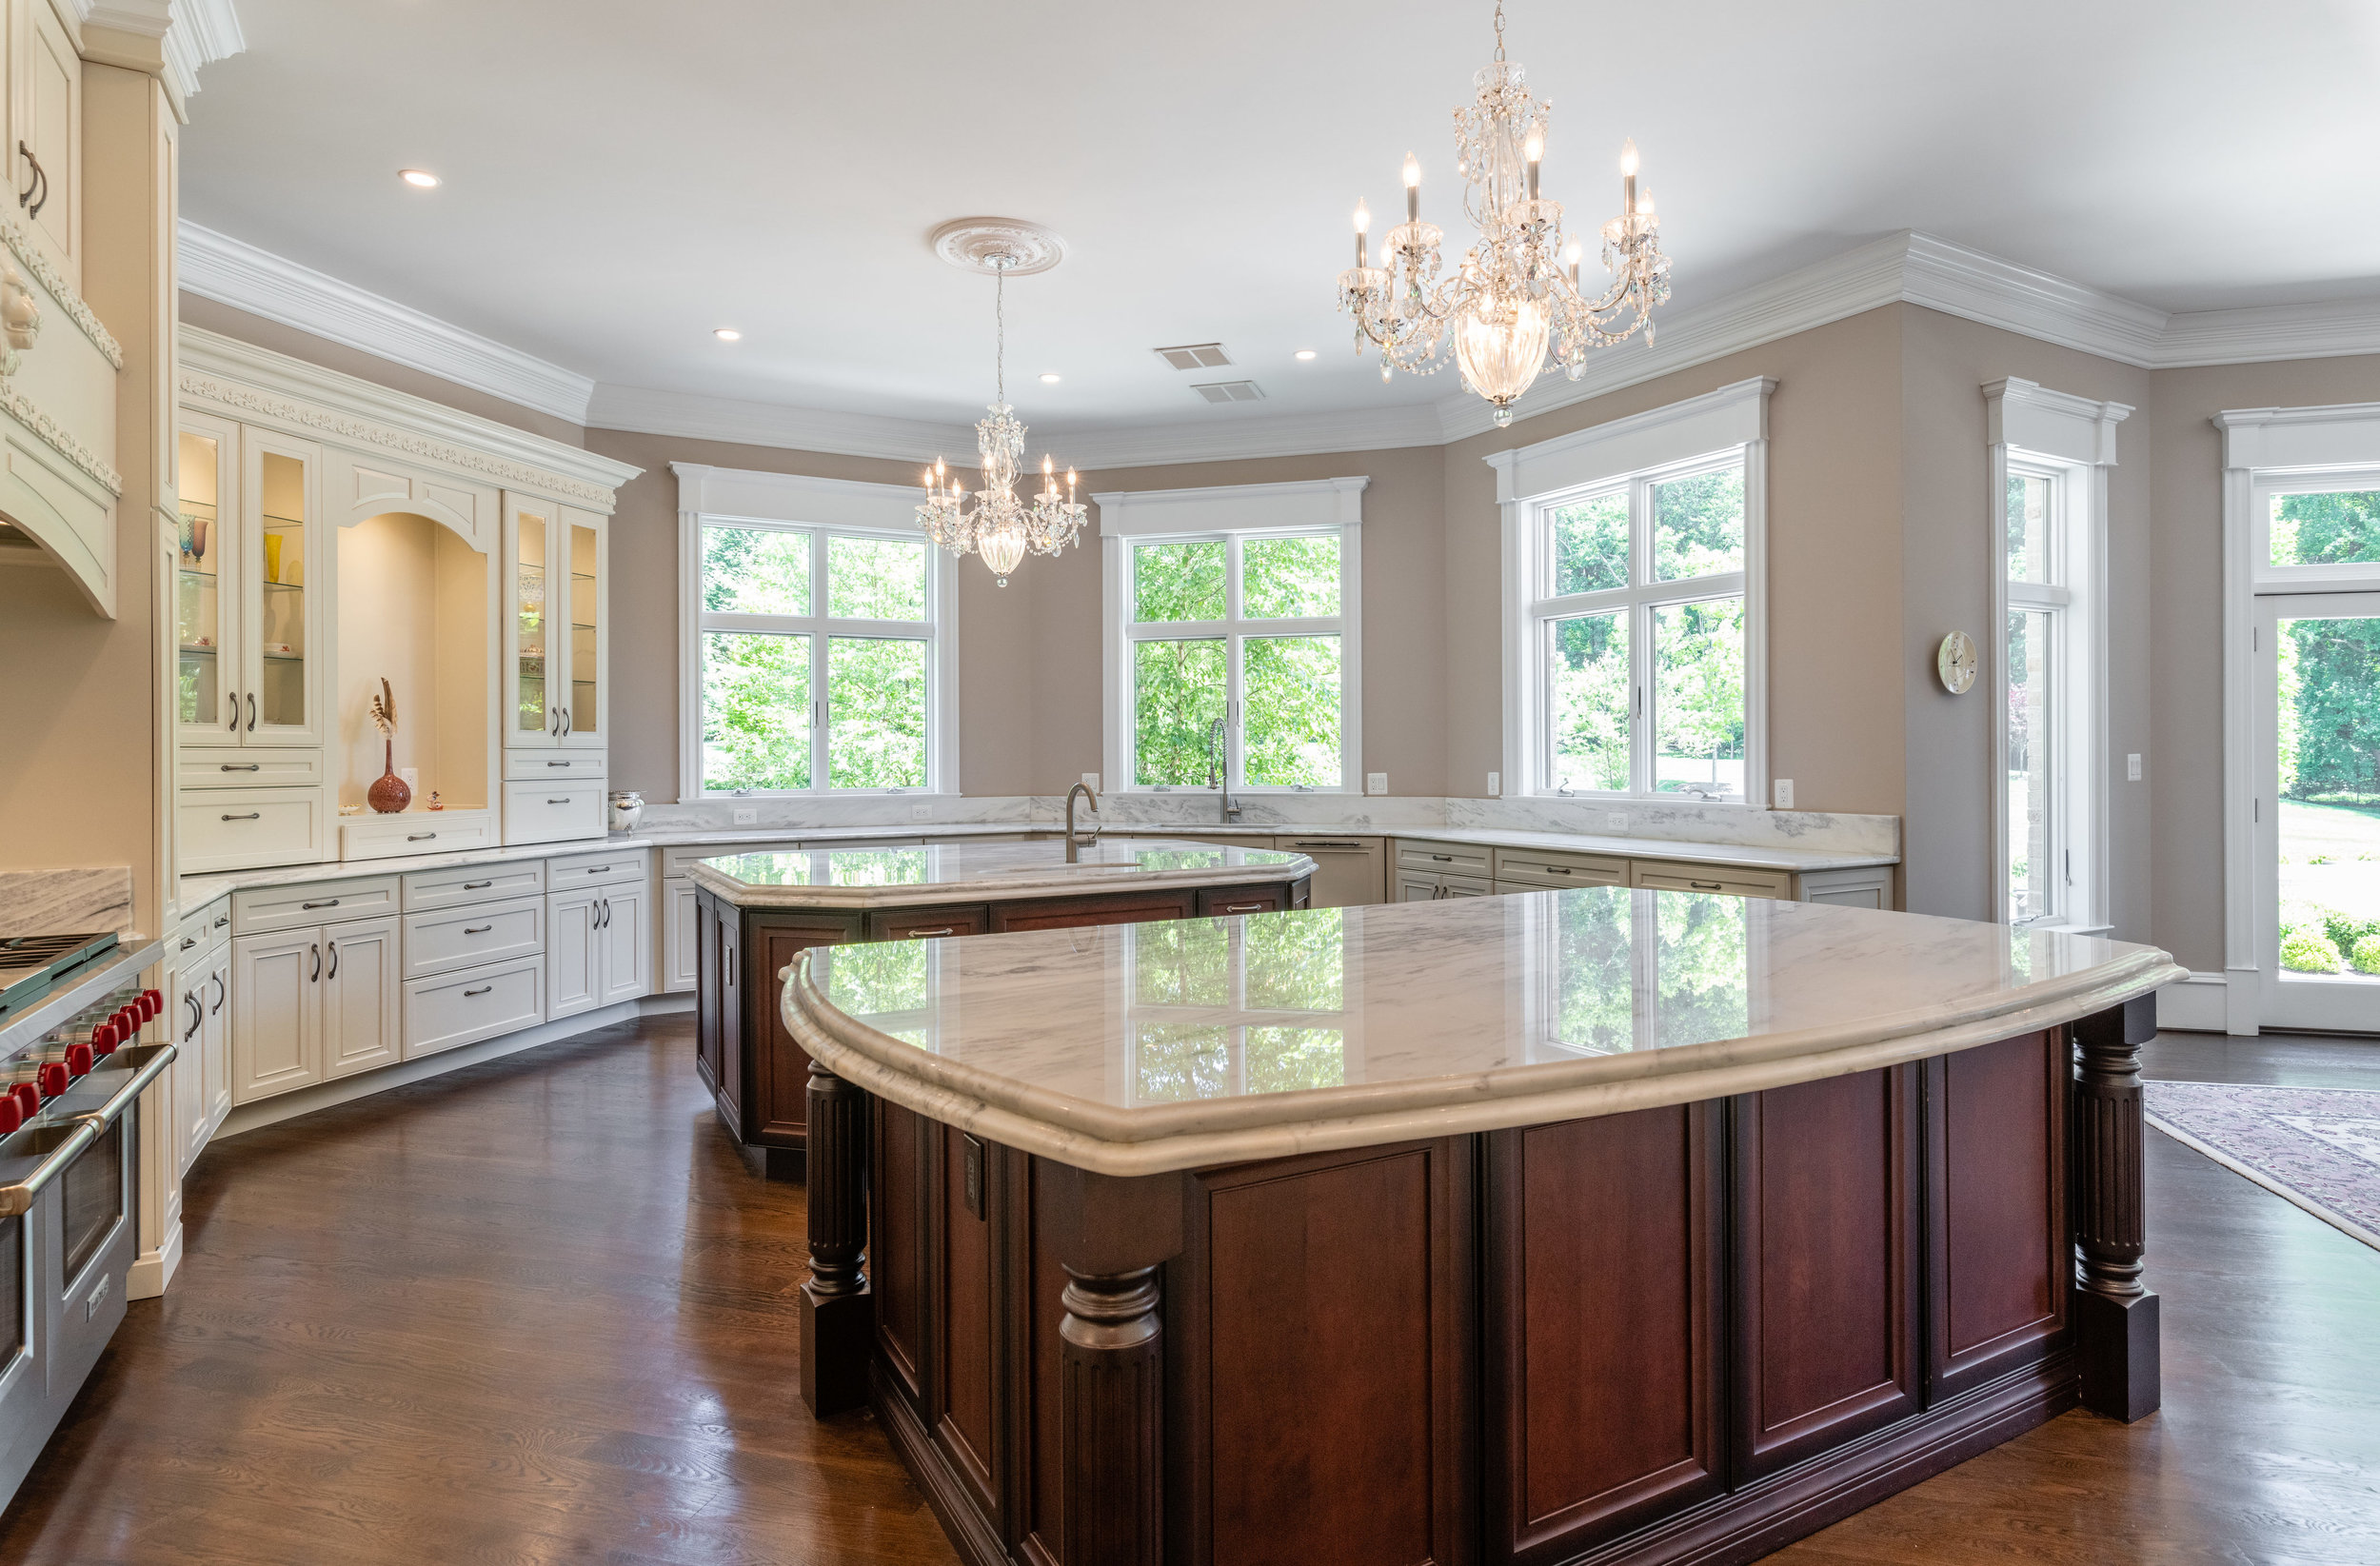 Kitchen features top-of-the-line appliances and generous storage